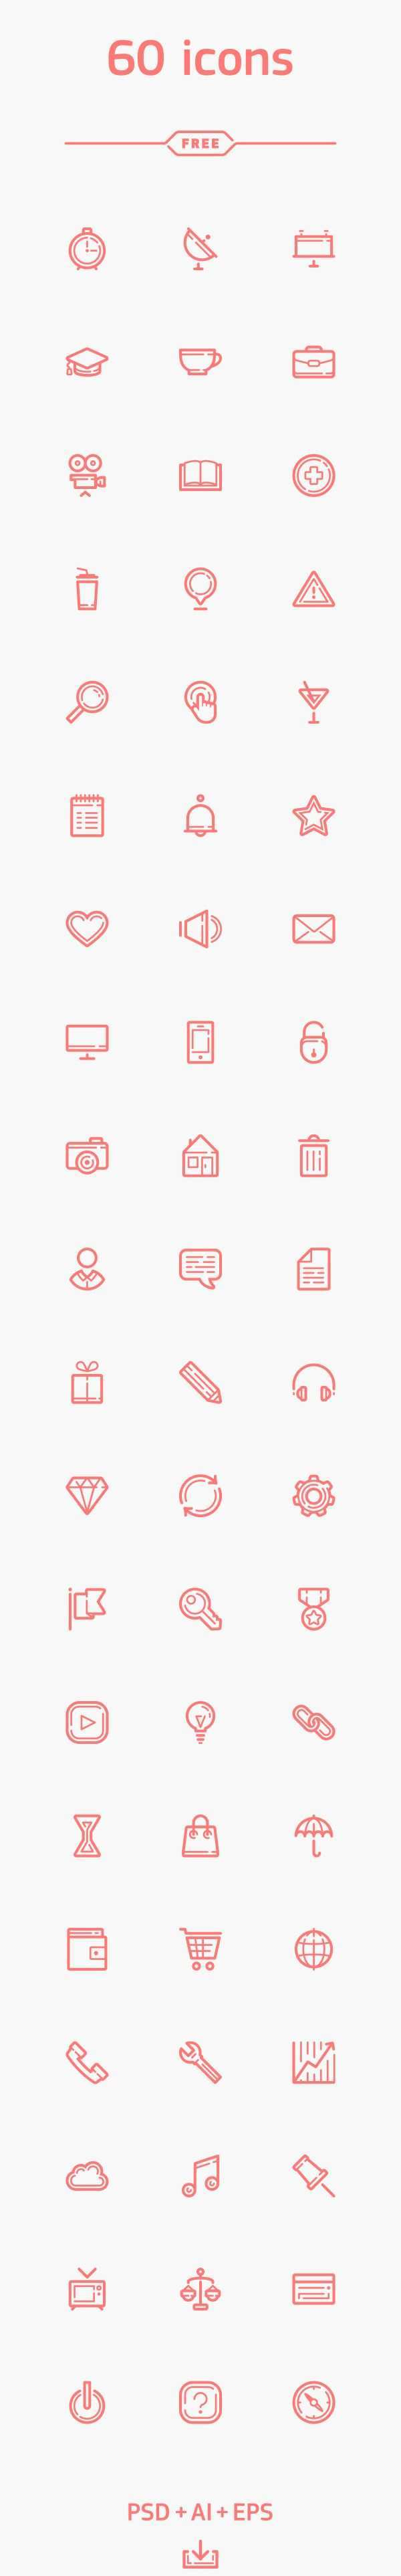 Free Icons For Web And User Interface Design 65 Icon Design Kostenlose Icons Screendesign